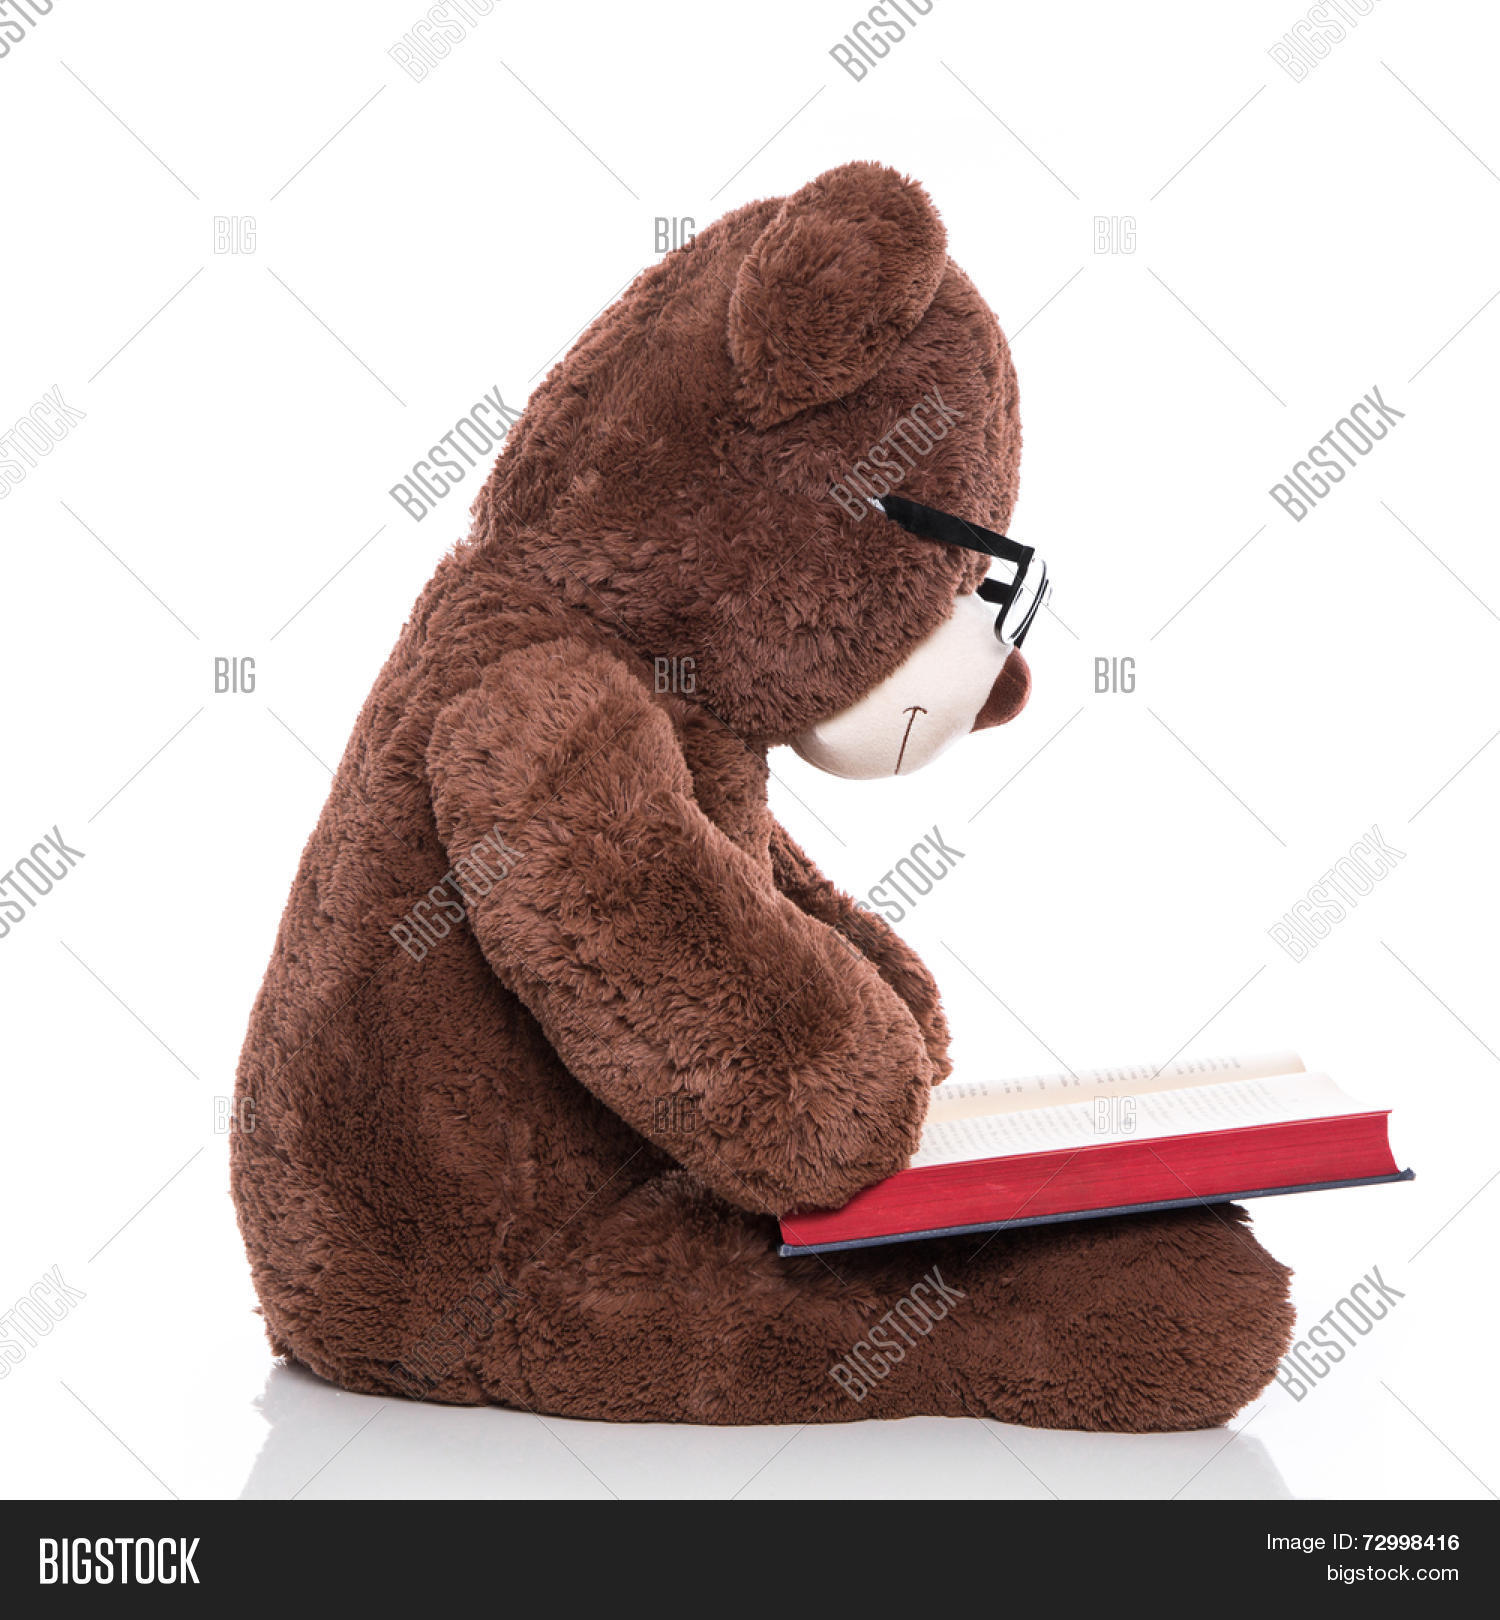 fb418be2b88 Teddy bear wearing glasses and reading a christmas story isolated on white  background